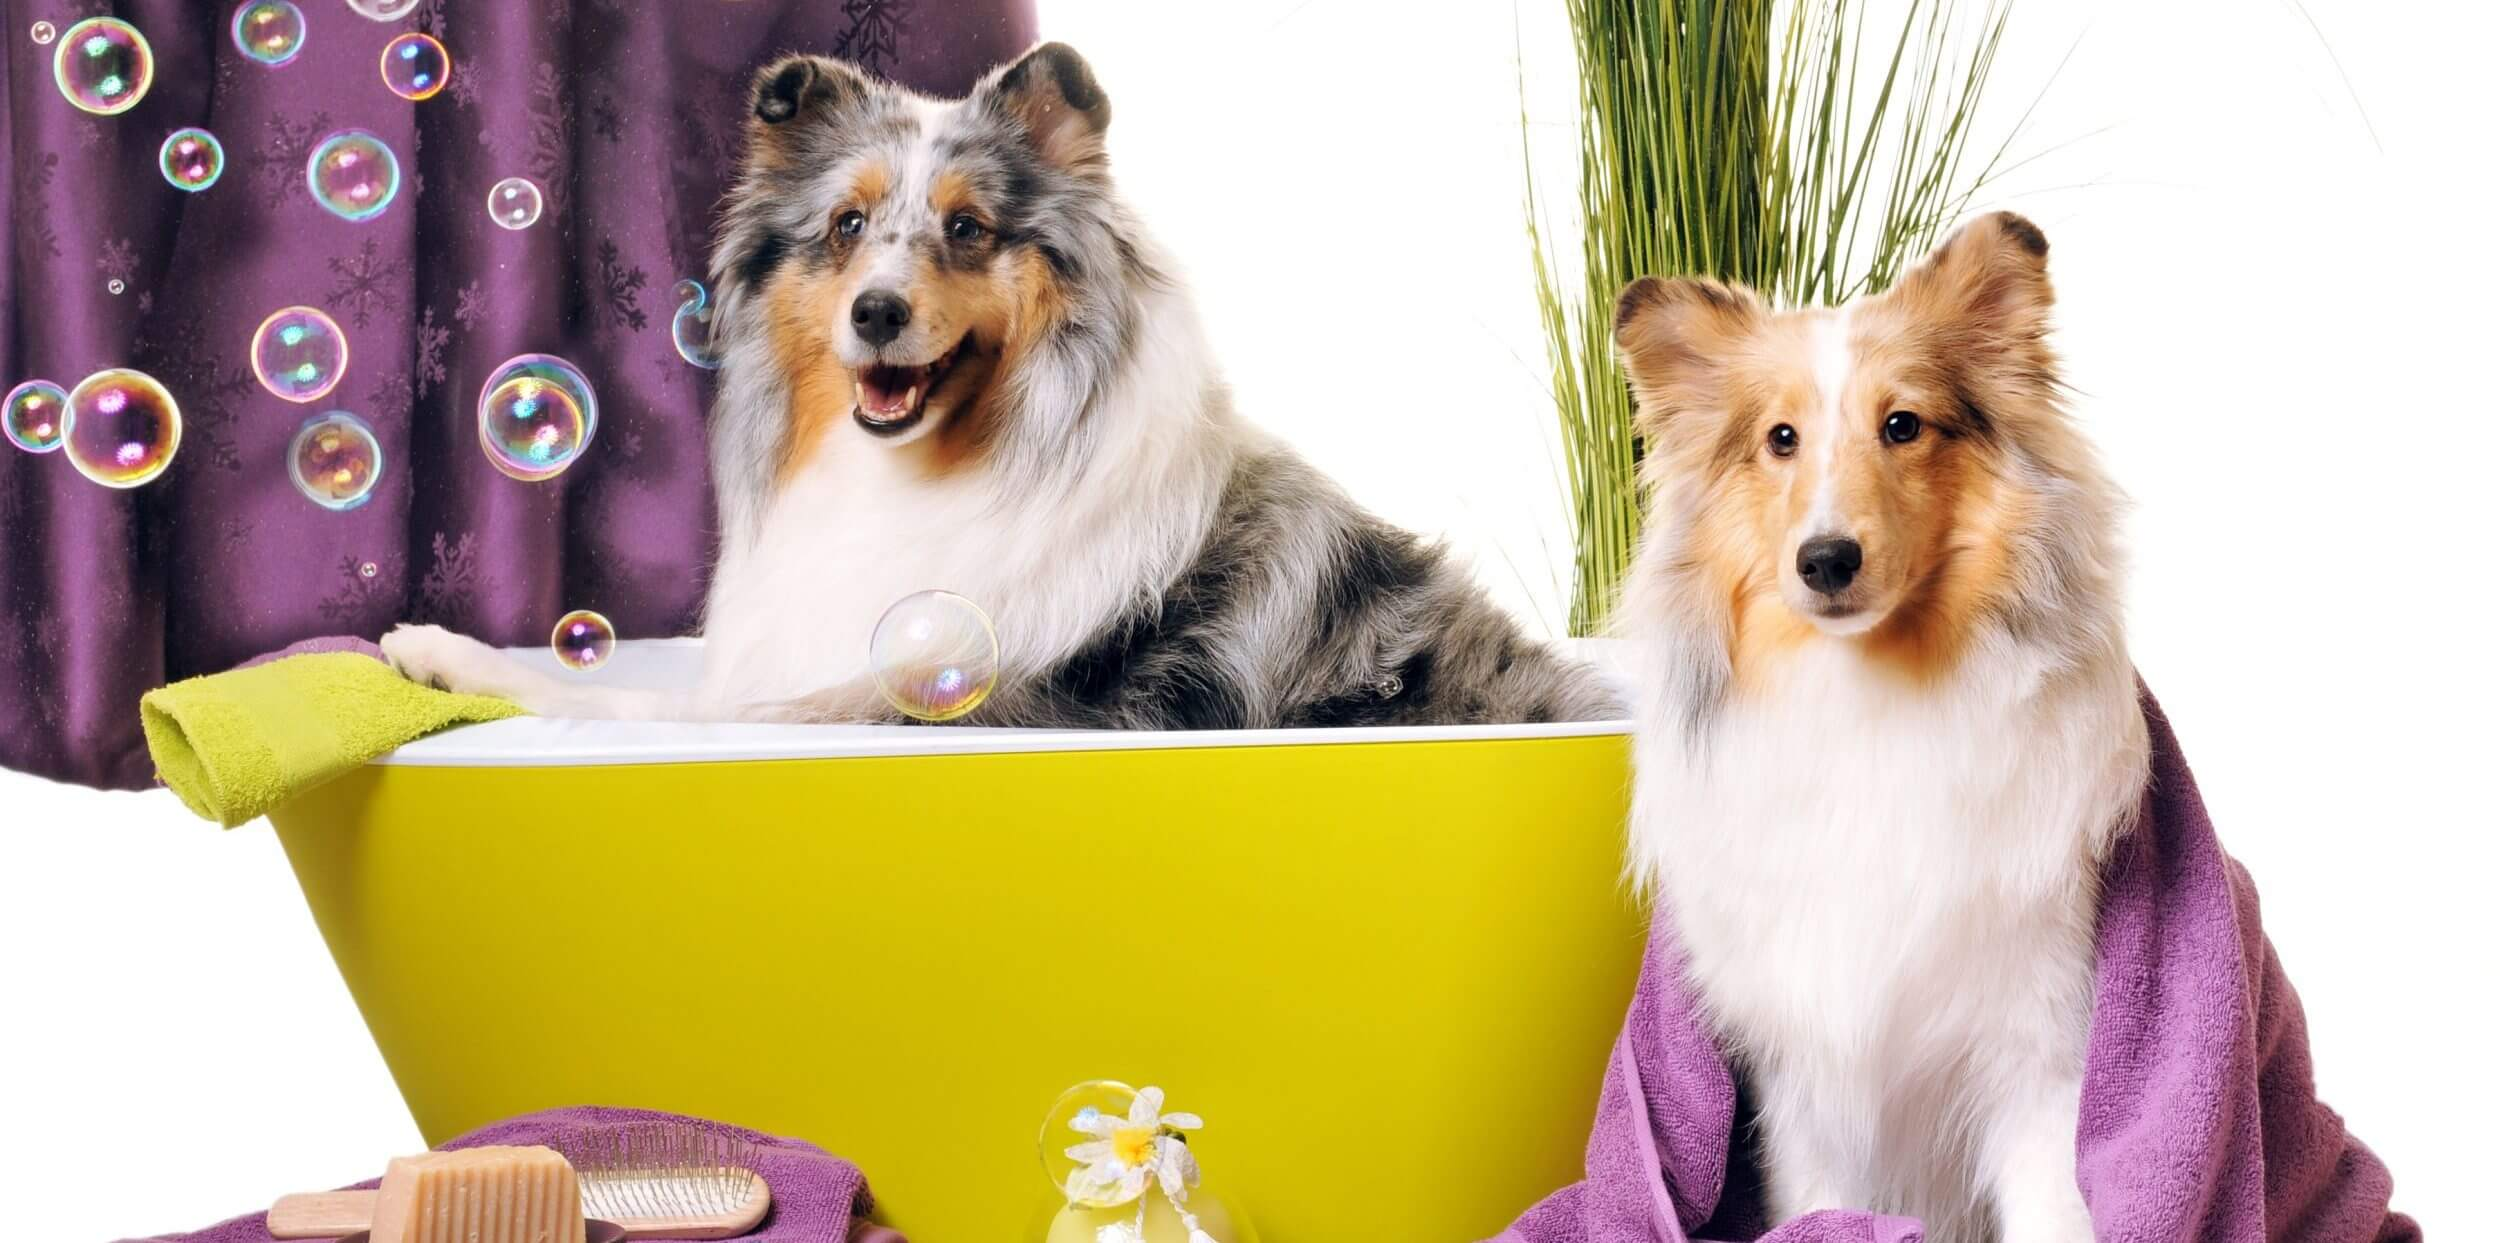 So Fresh and So Clean: Pet Grooming at Meadowrun Affordable Pet Care